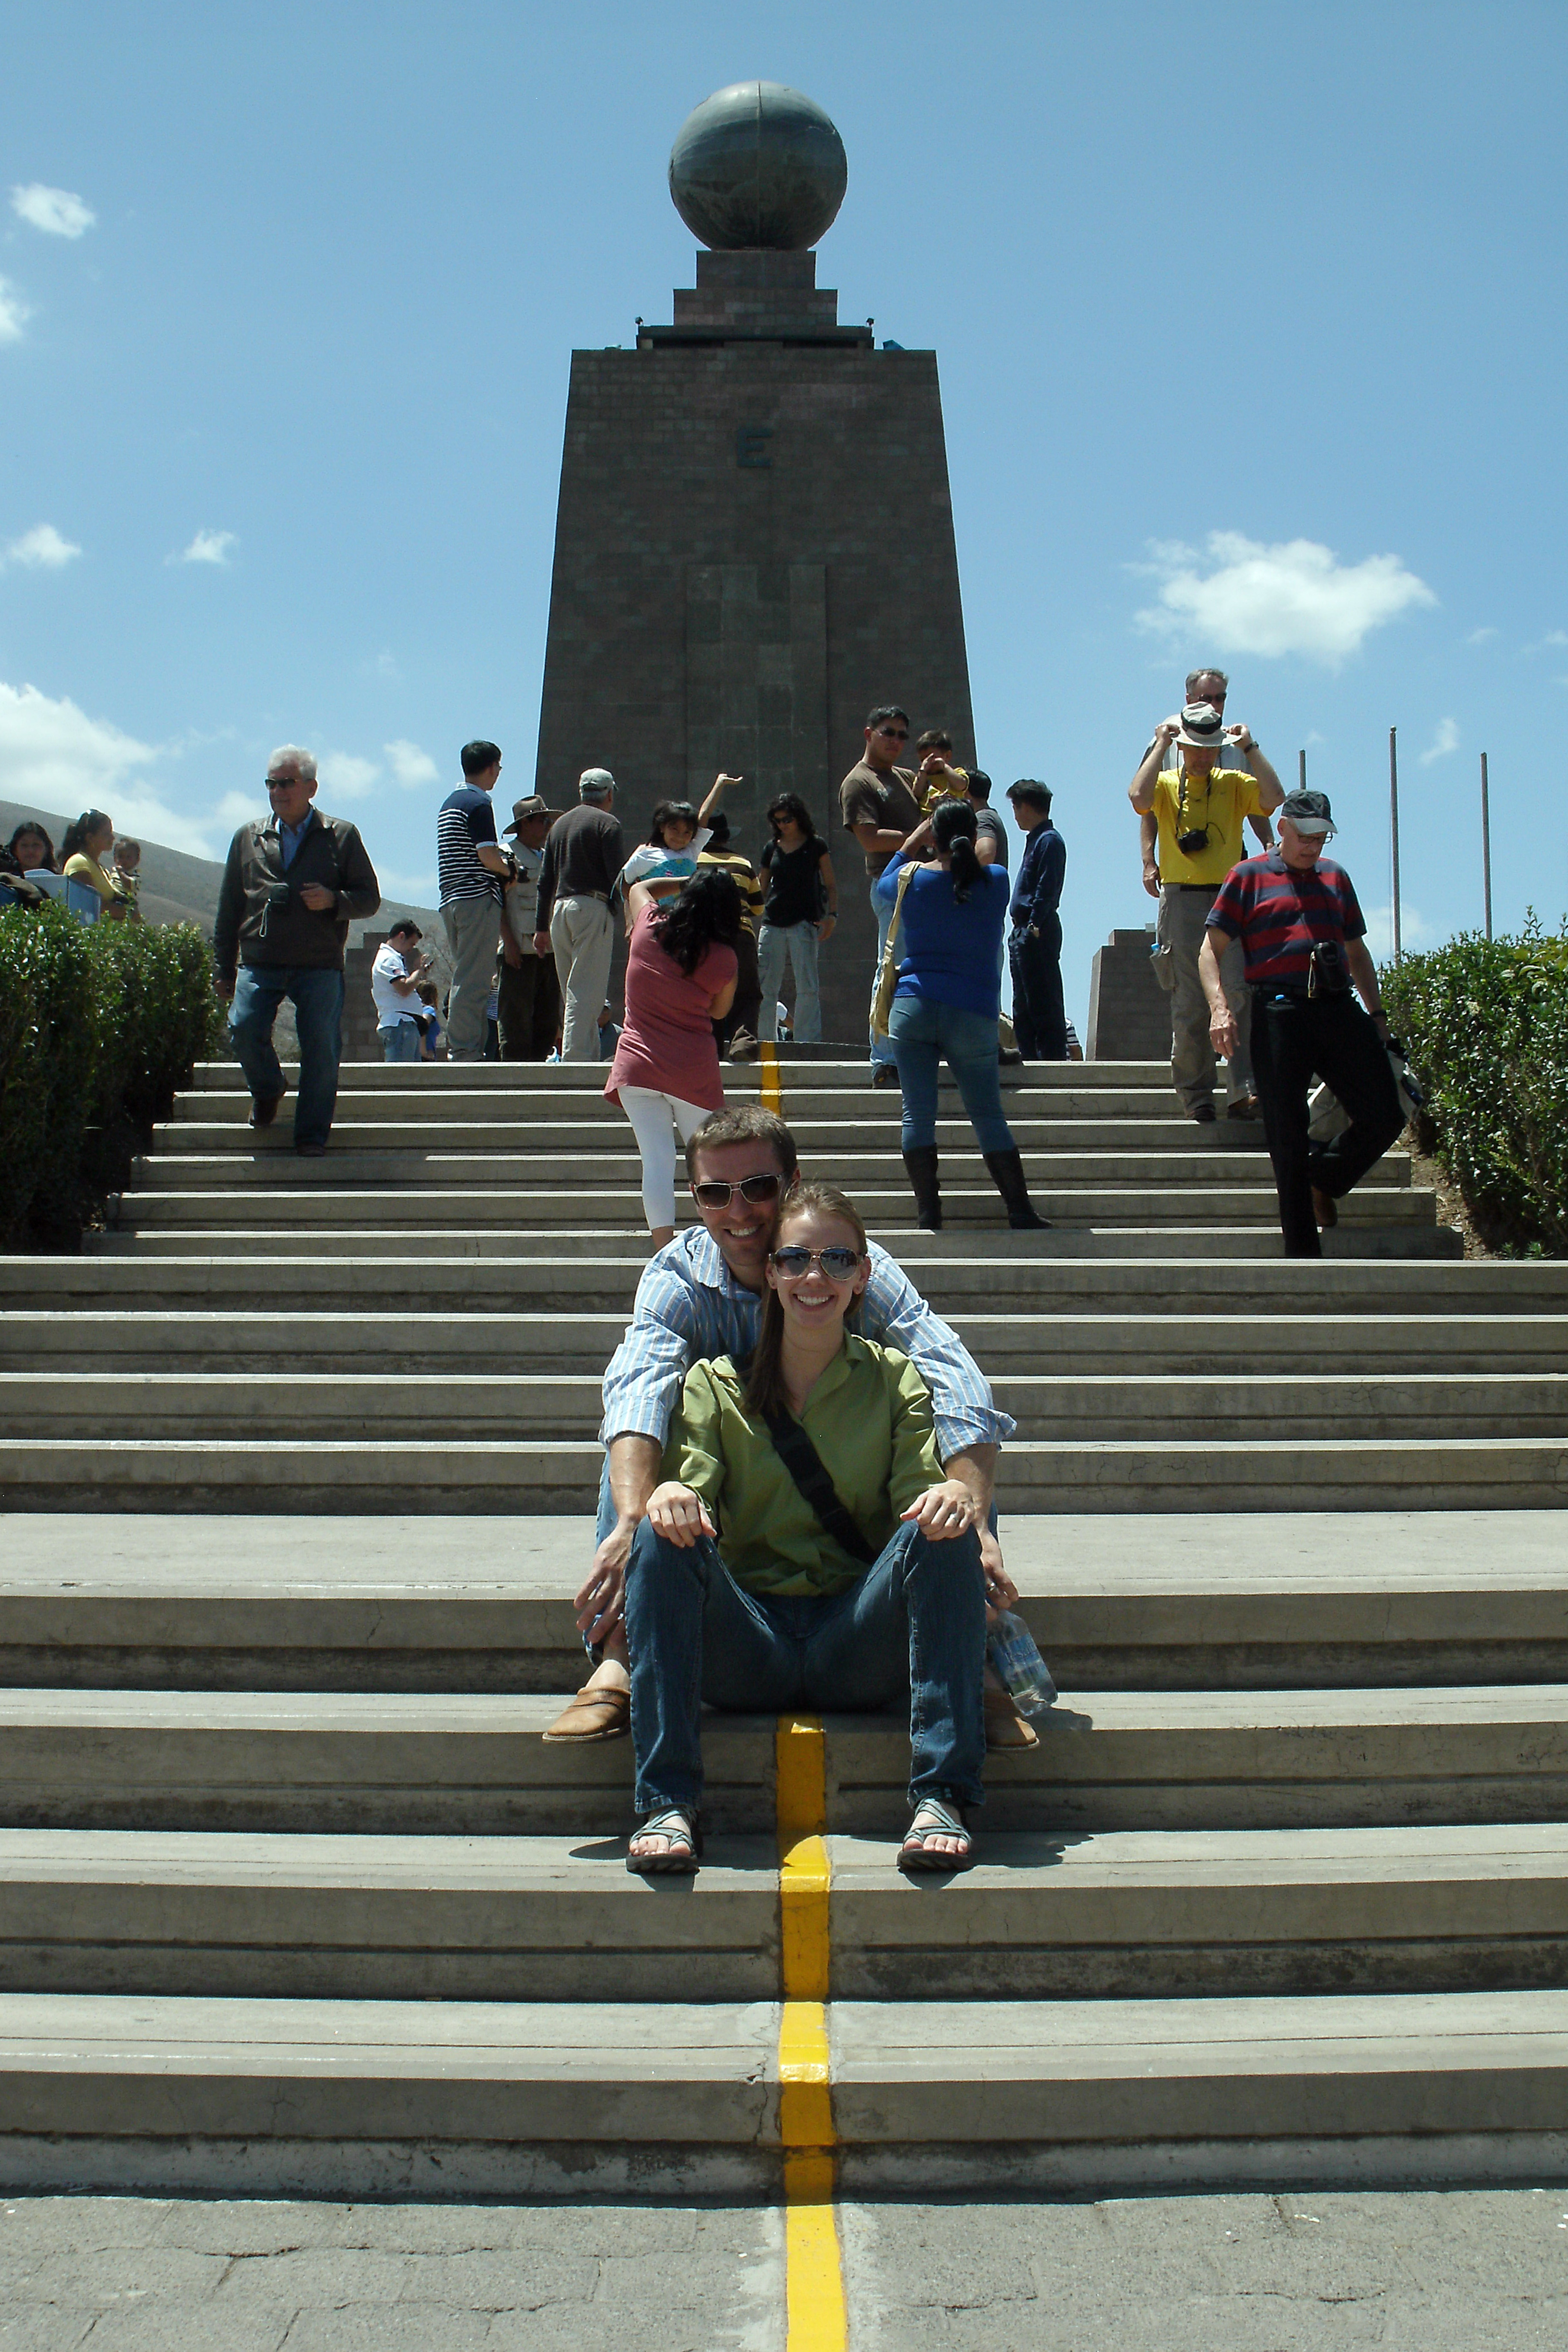 Couple Sitting on Equator at Middle of the World Monument in Ecuador